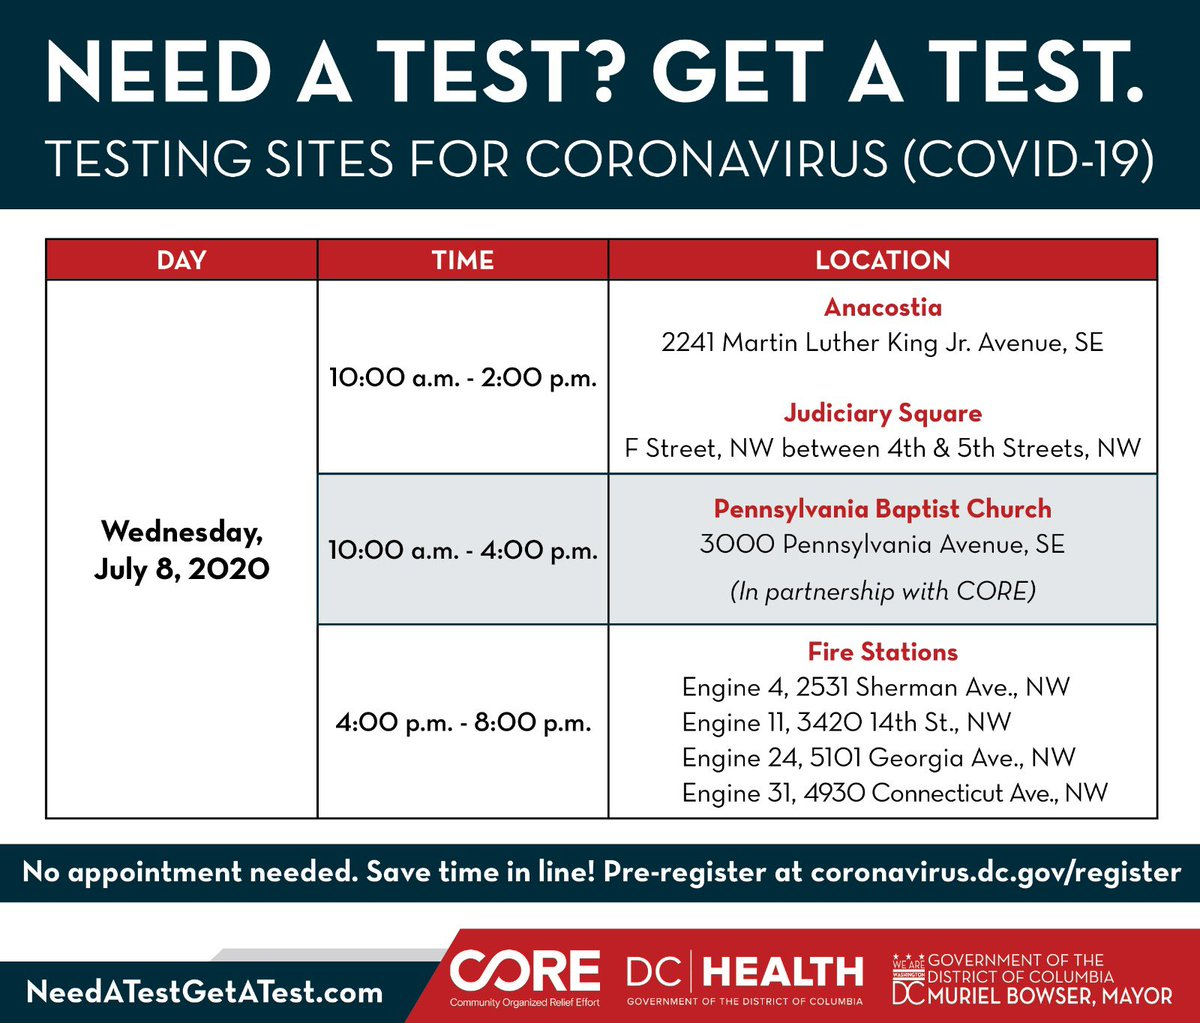 Get tested today...